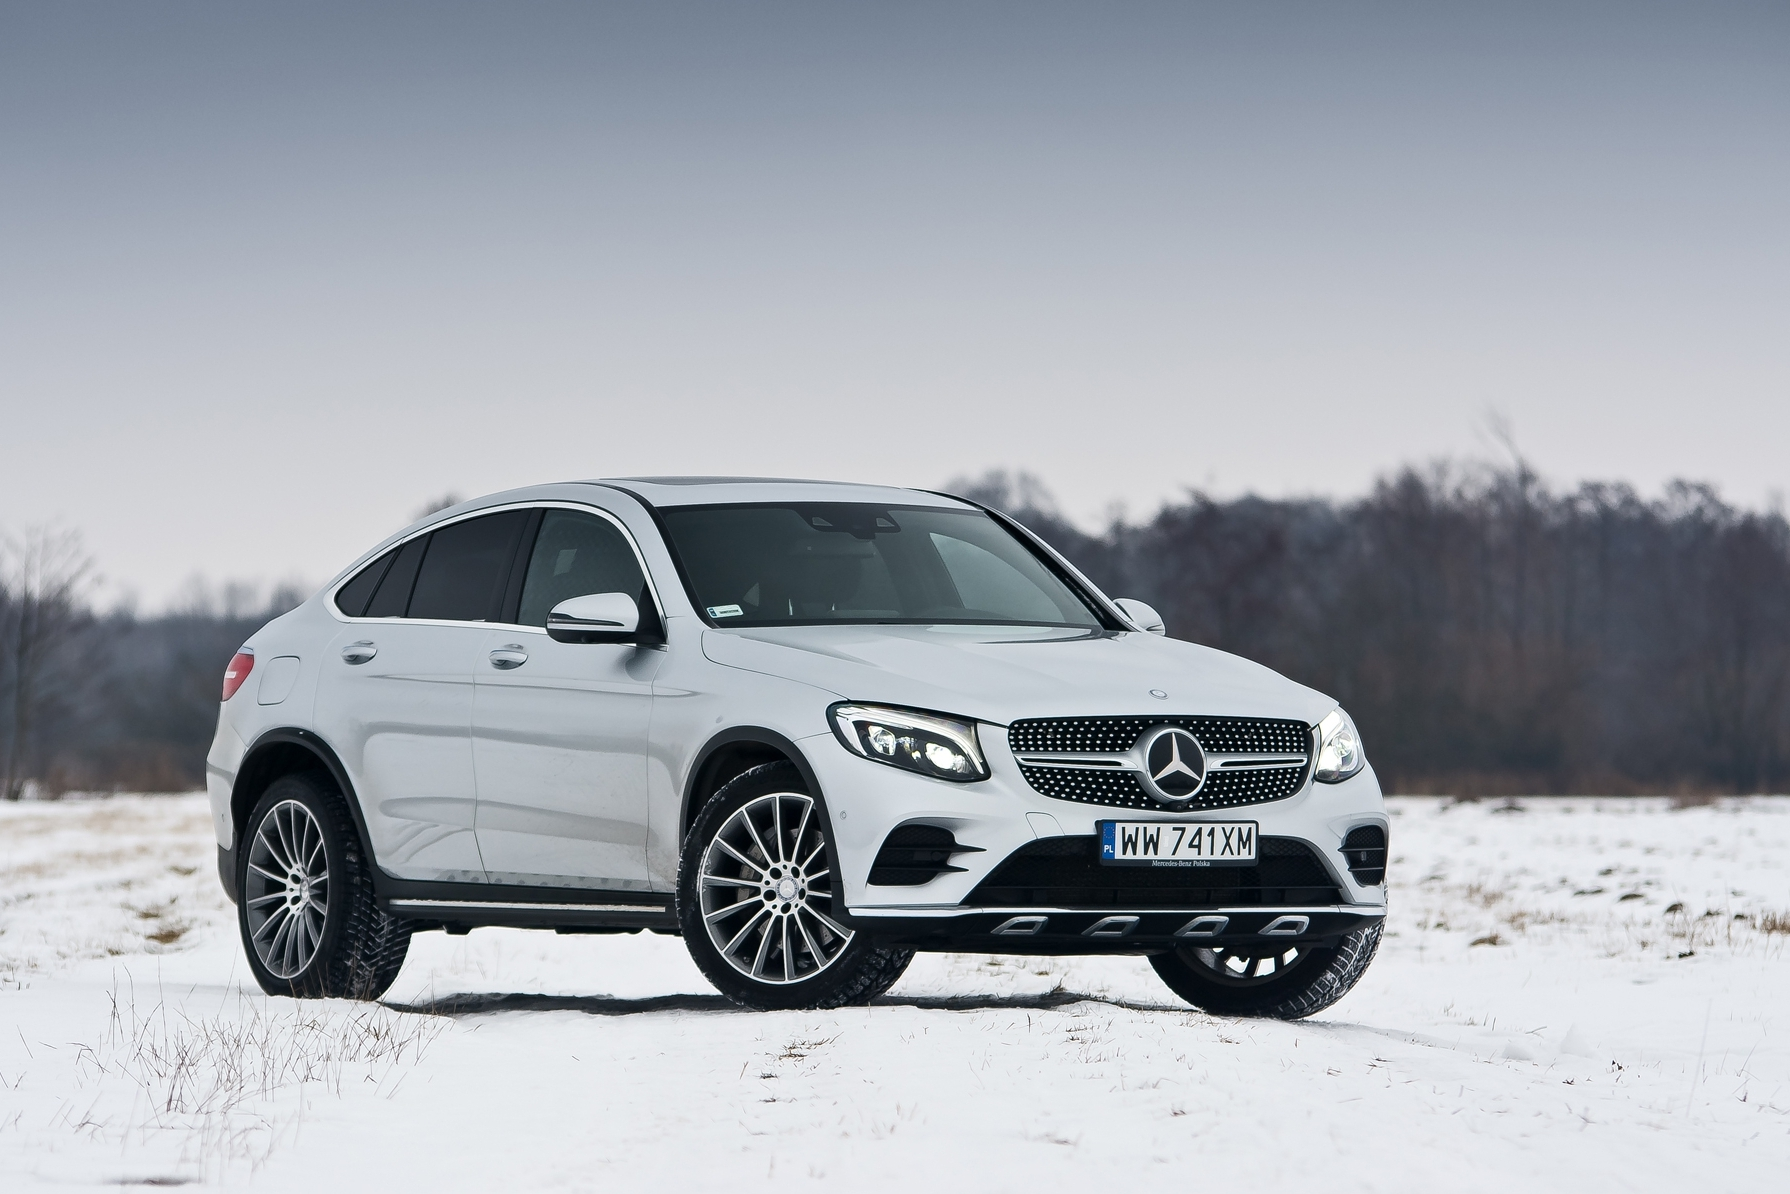 TEST Mercedes Benz GLC Coupe 250d 4MATIC 9G Tronic usportowiony SUV Super Express